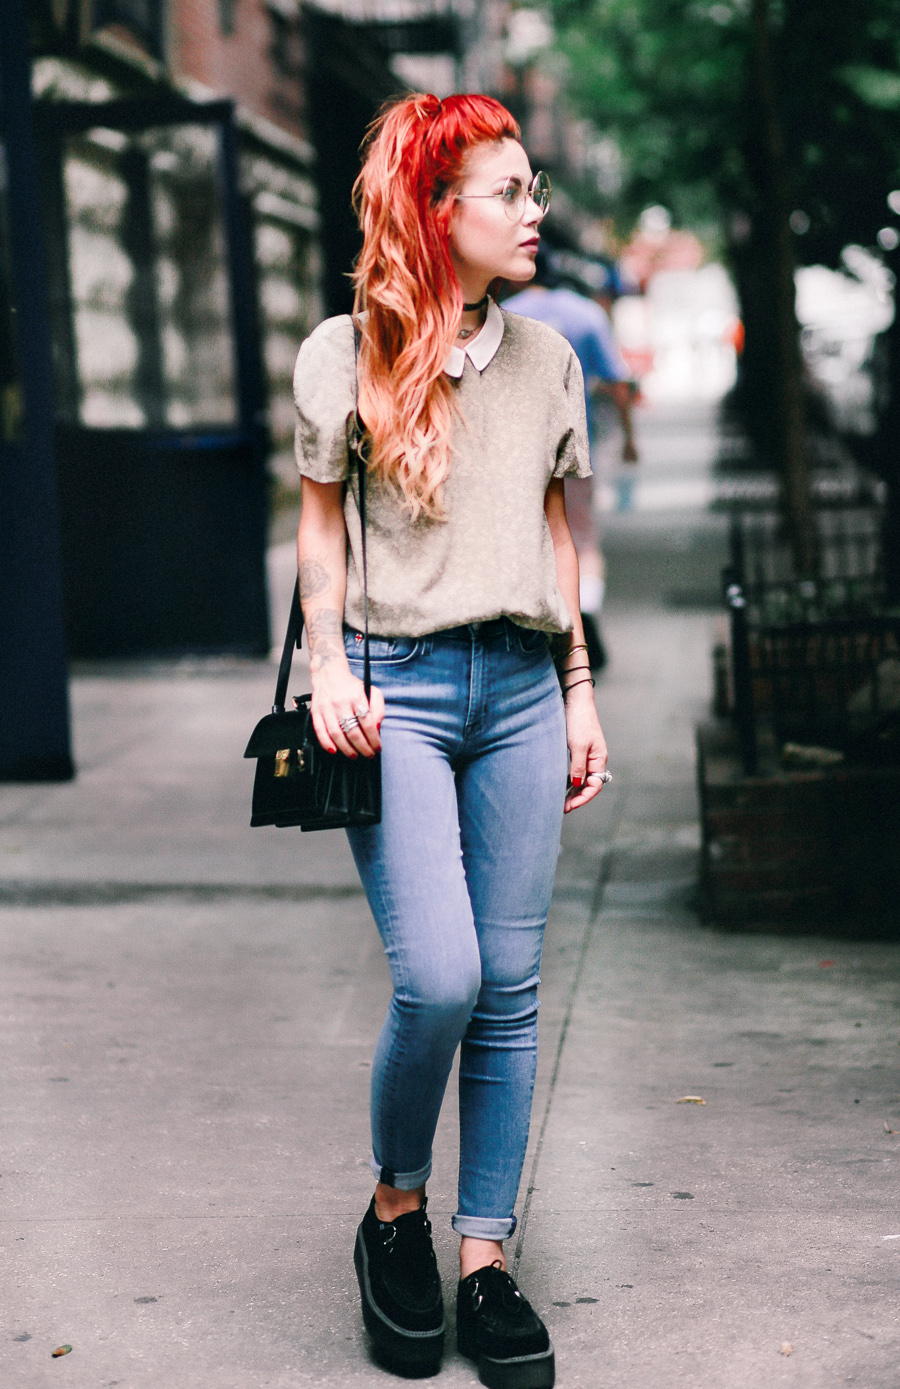 Le Happy wearing Barbara Hudson Jeans and Saint Laurent High School Satchel